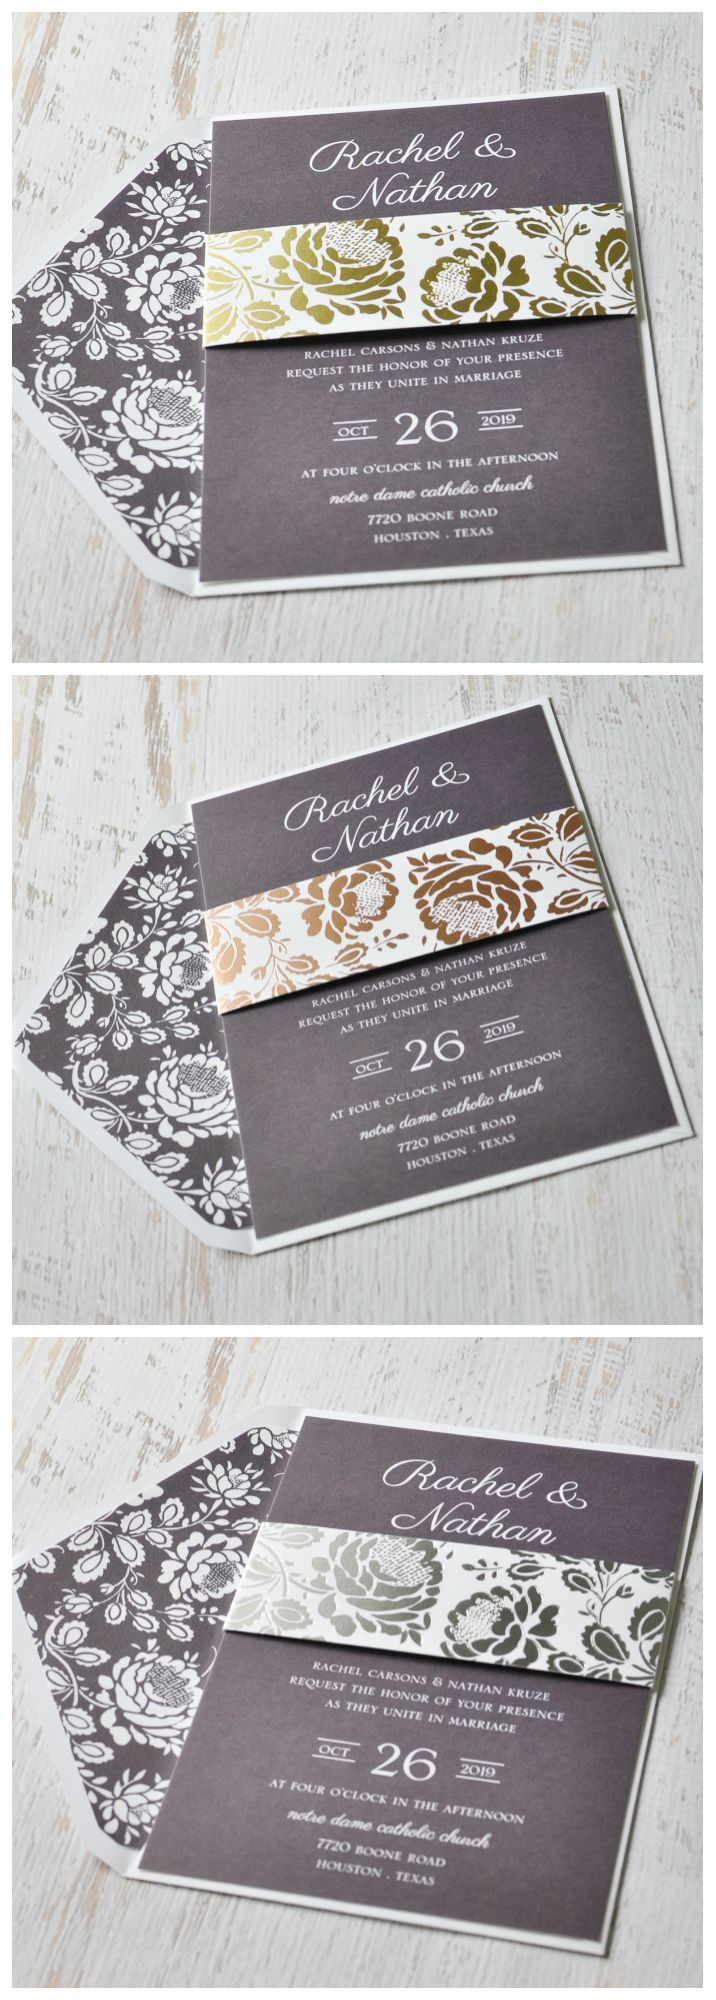 sample of wedding invitation letter%0A A touch of shine and a lot of style will captivate your wedding guests  This